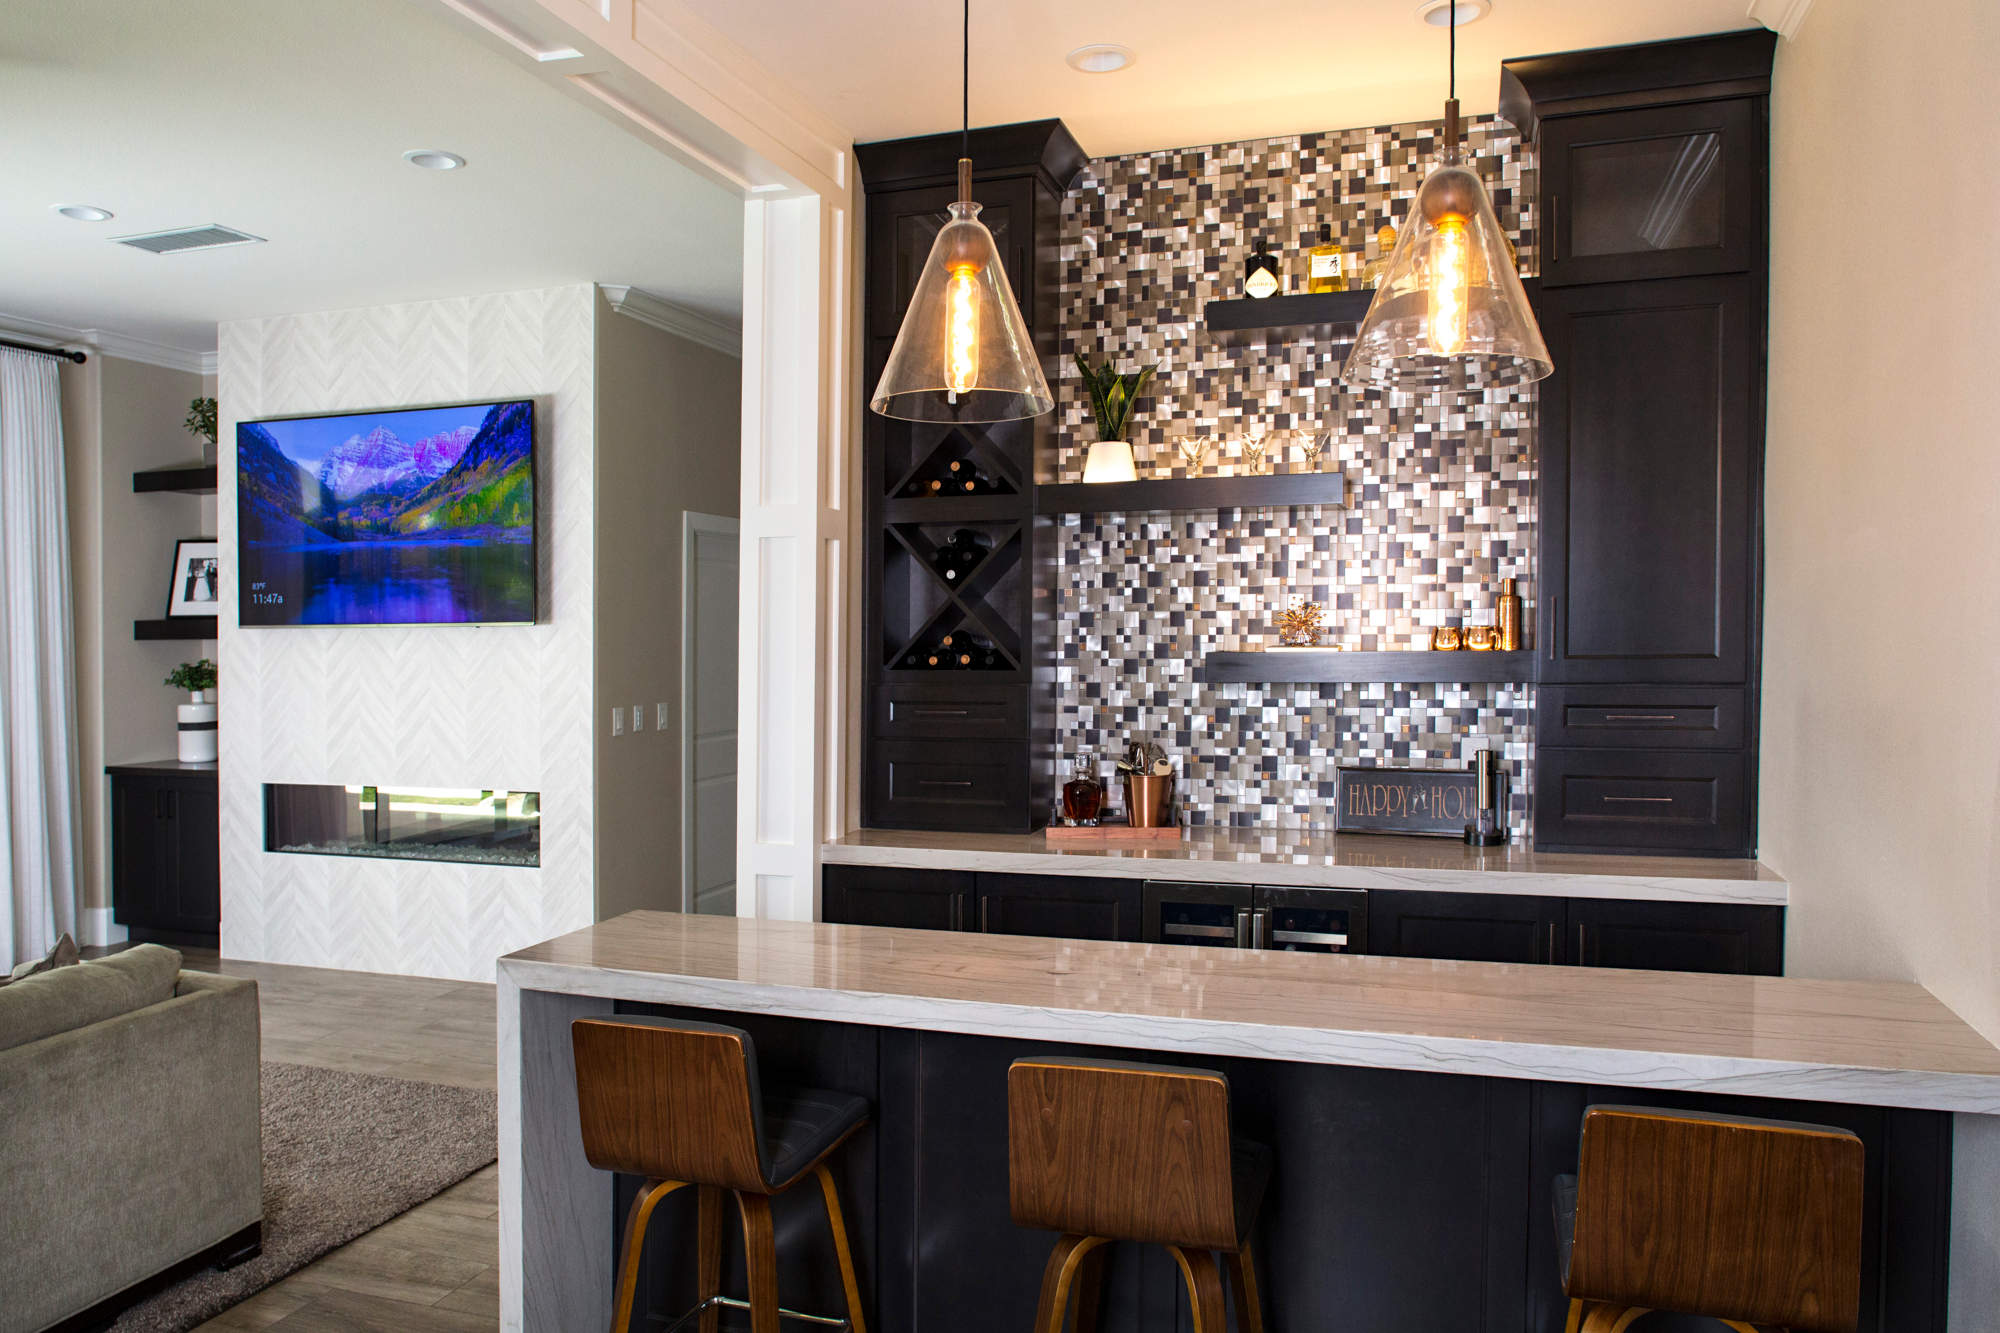 Family room with titled fireplace wall and bar section with barstools and pendent lighting.